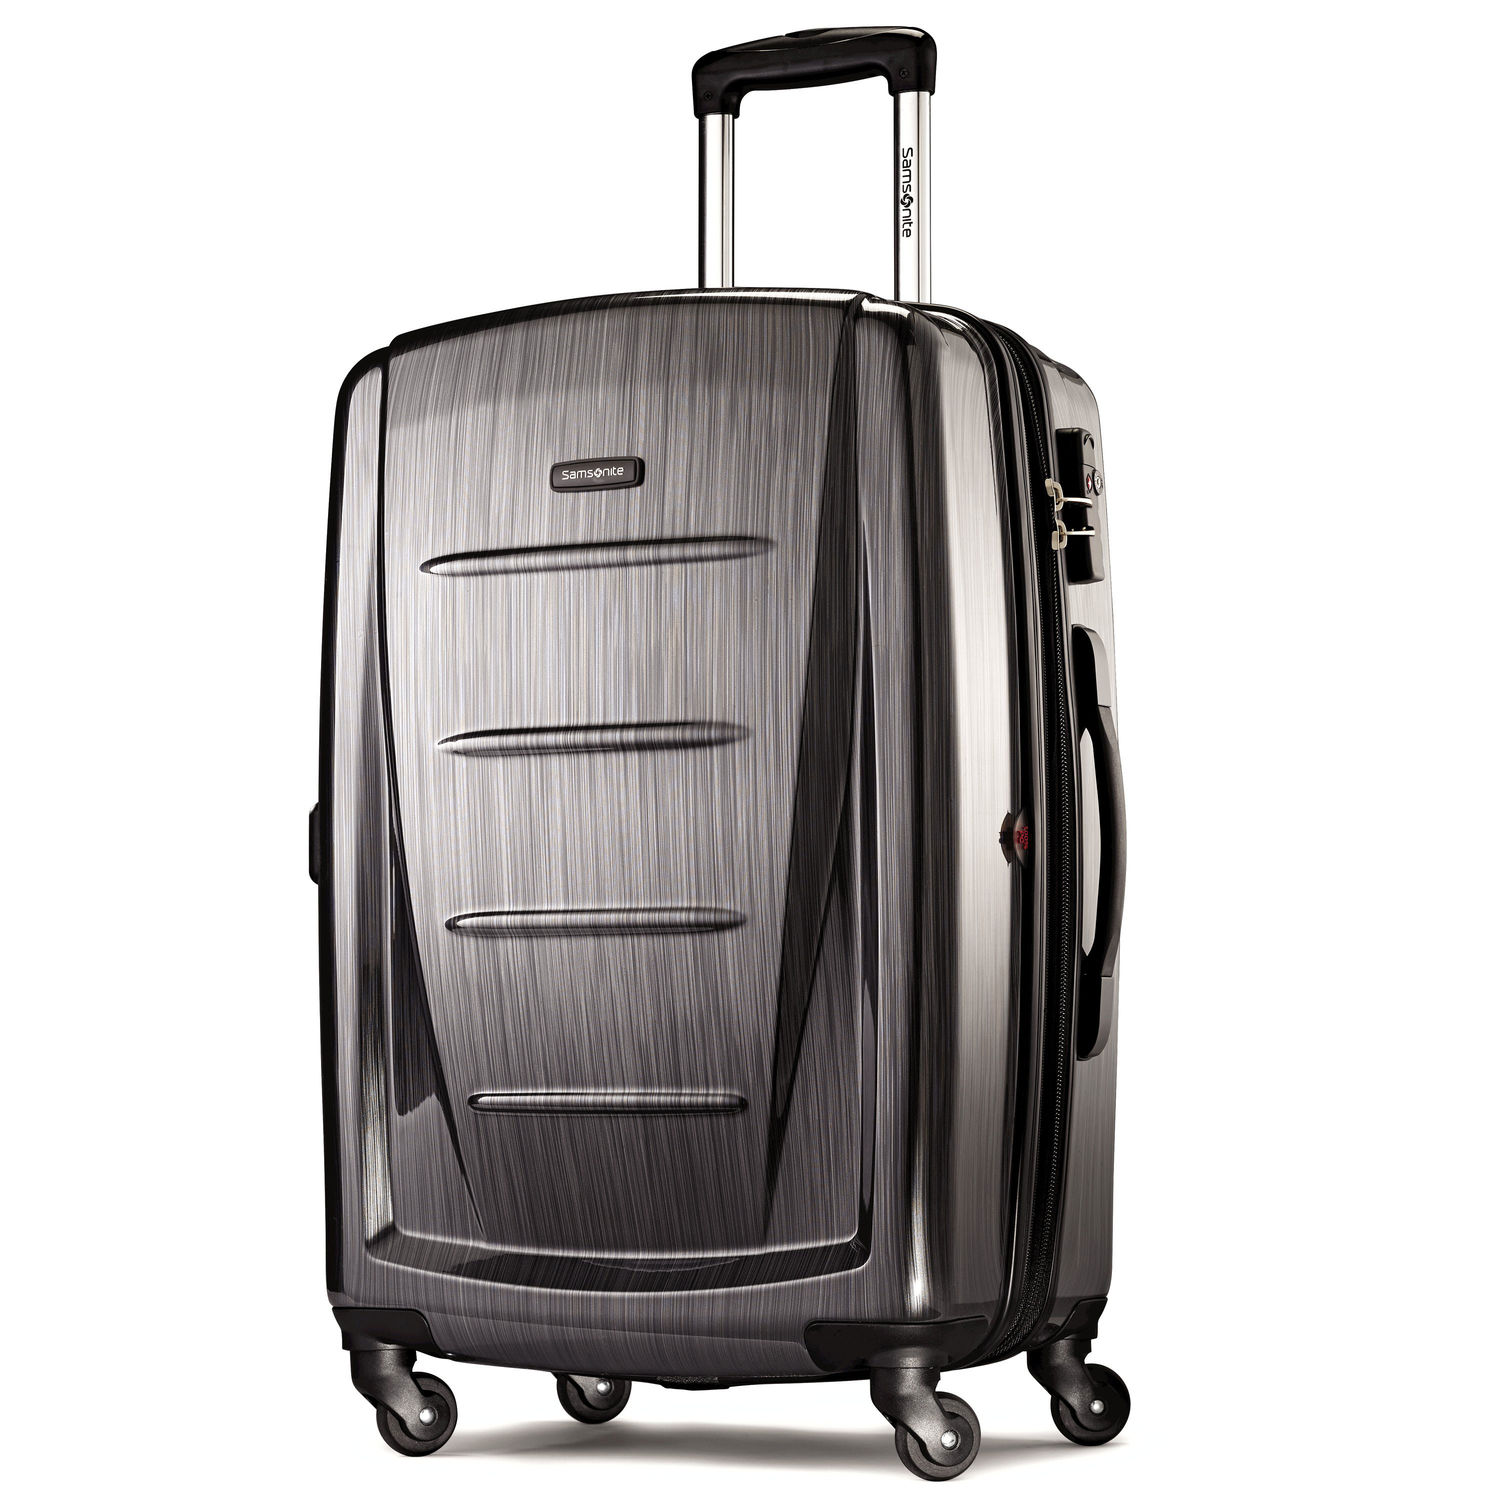 Samsonite Winfield 2 Spinner